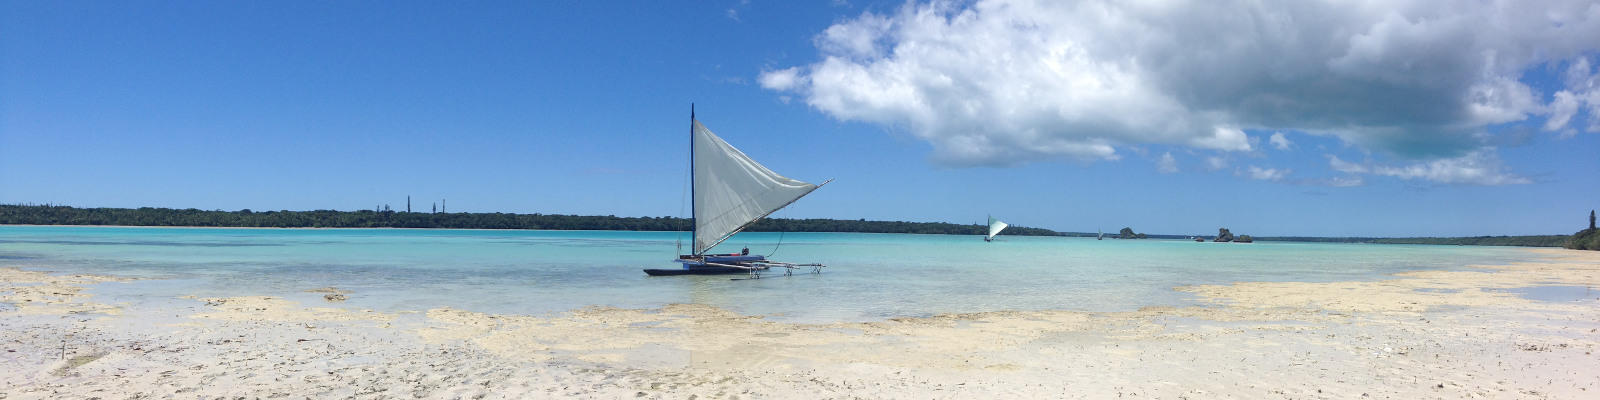 A traditional pirogue in New Caledonia.